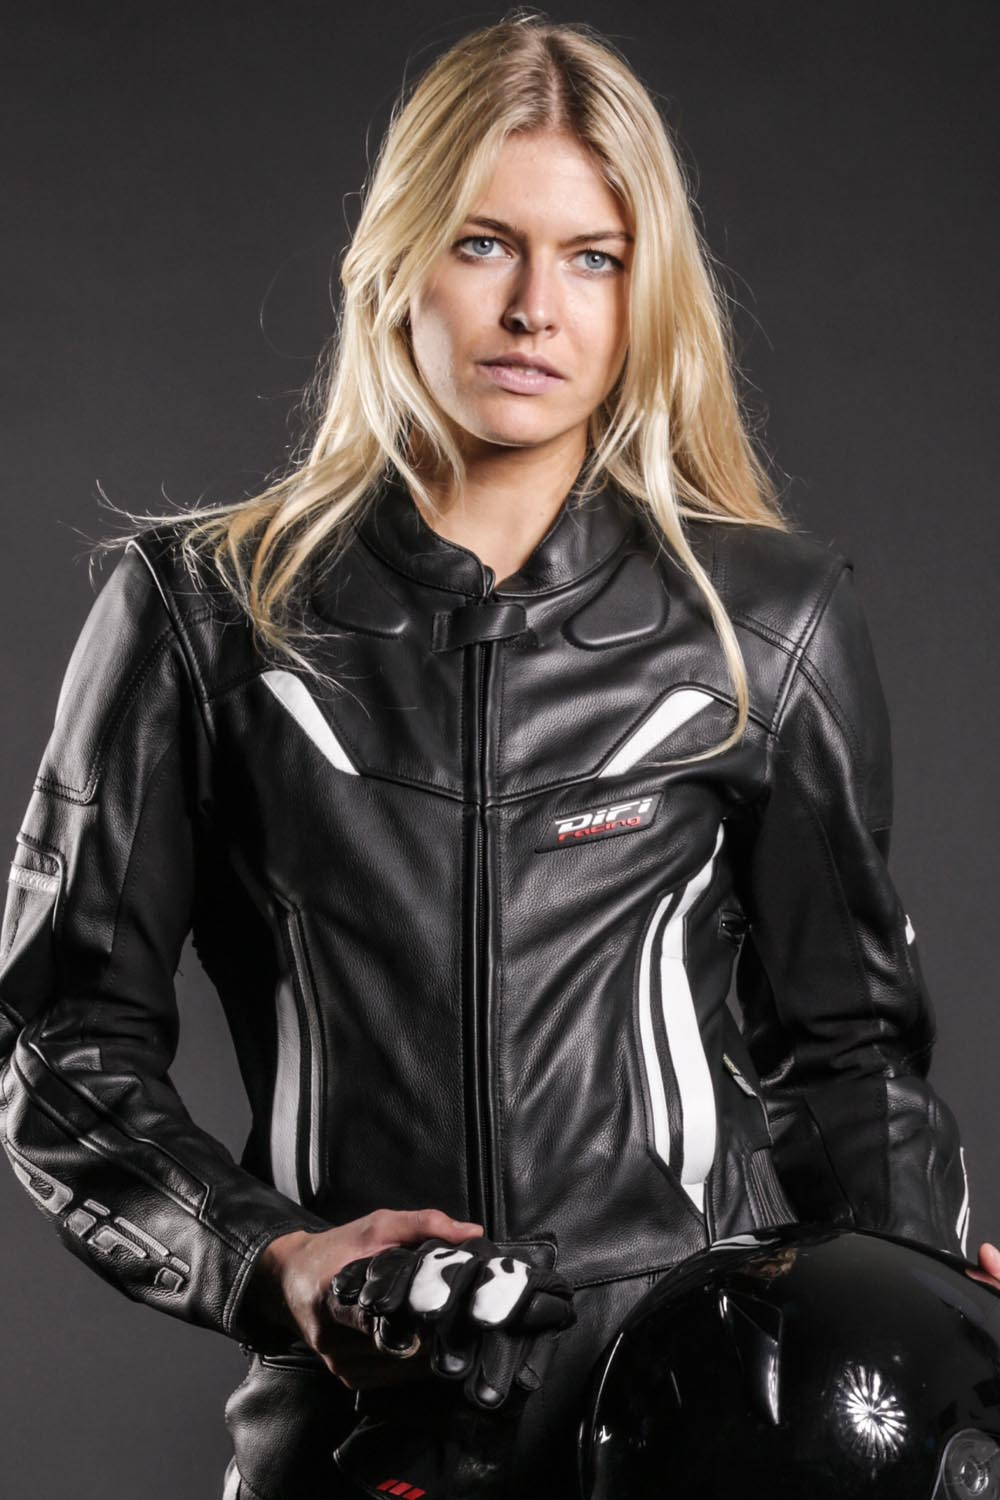 difi monaco lady motorradjacke im motoport onlineshop. Black Bedroom Furniture Sets. Home Design Ideas